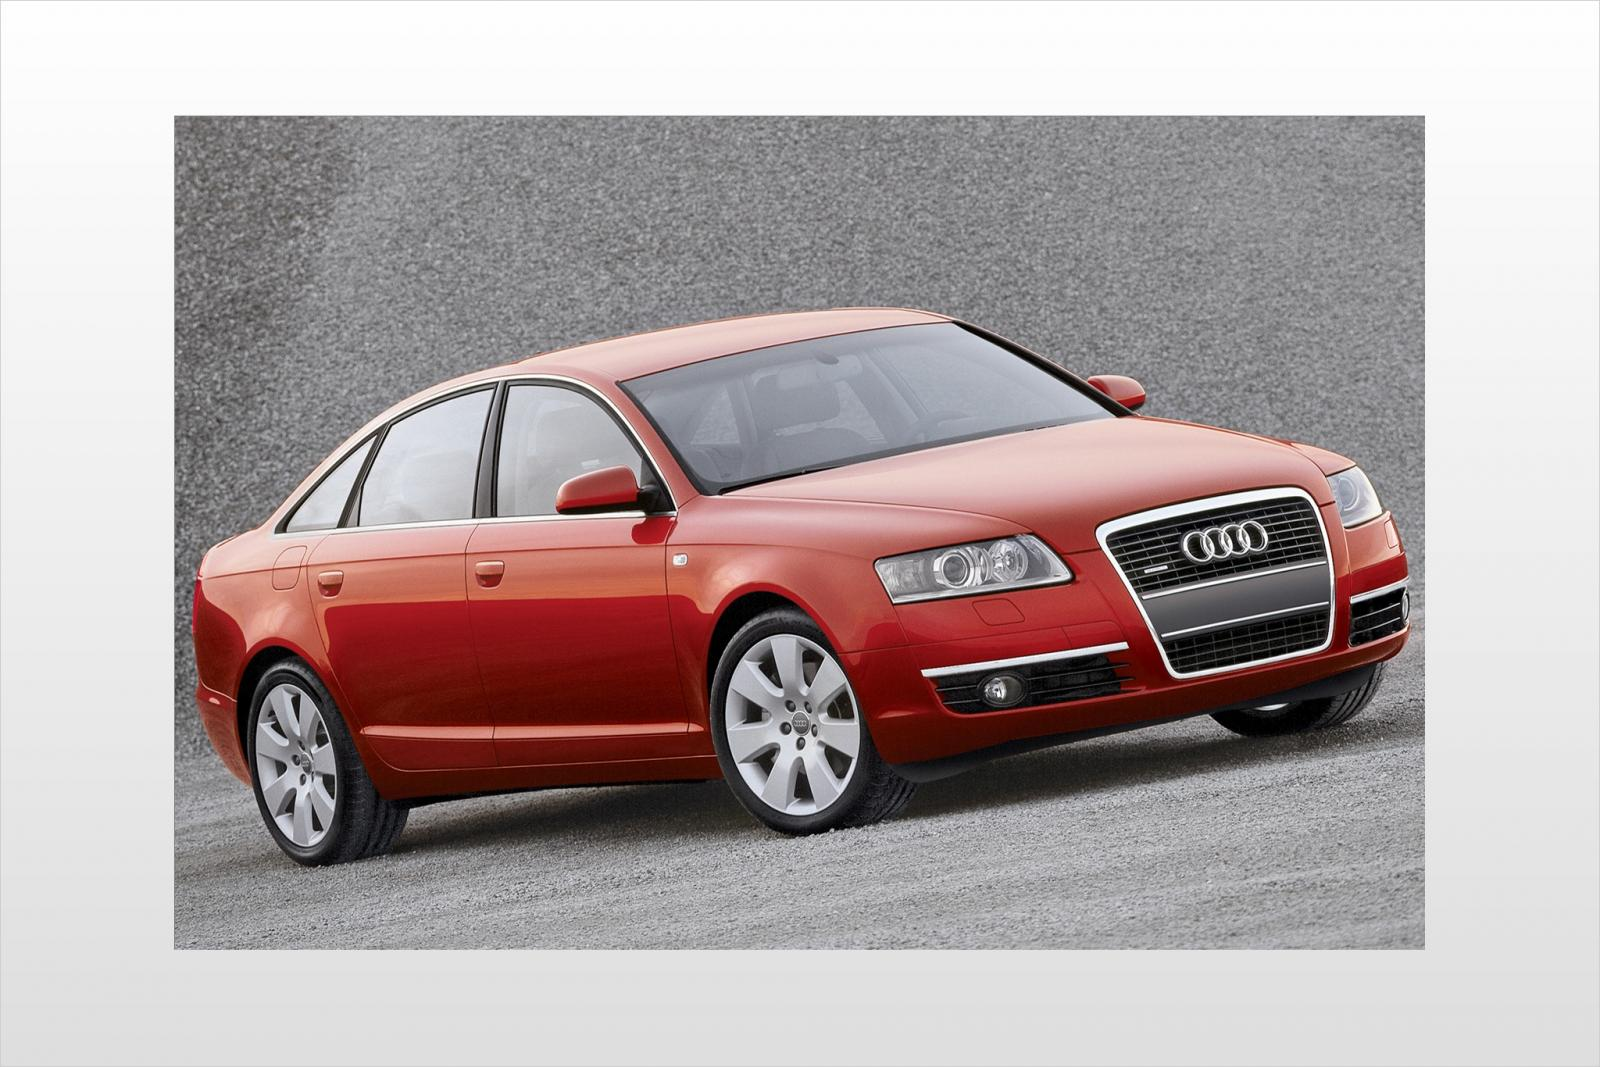 2008 audi a6 information and photos zombiedrive. Black Bedroom Furniture Sets. Home Design Ideas